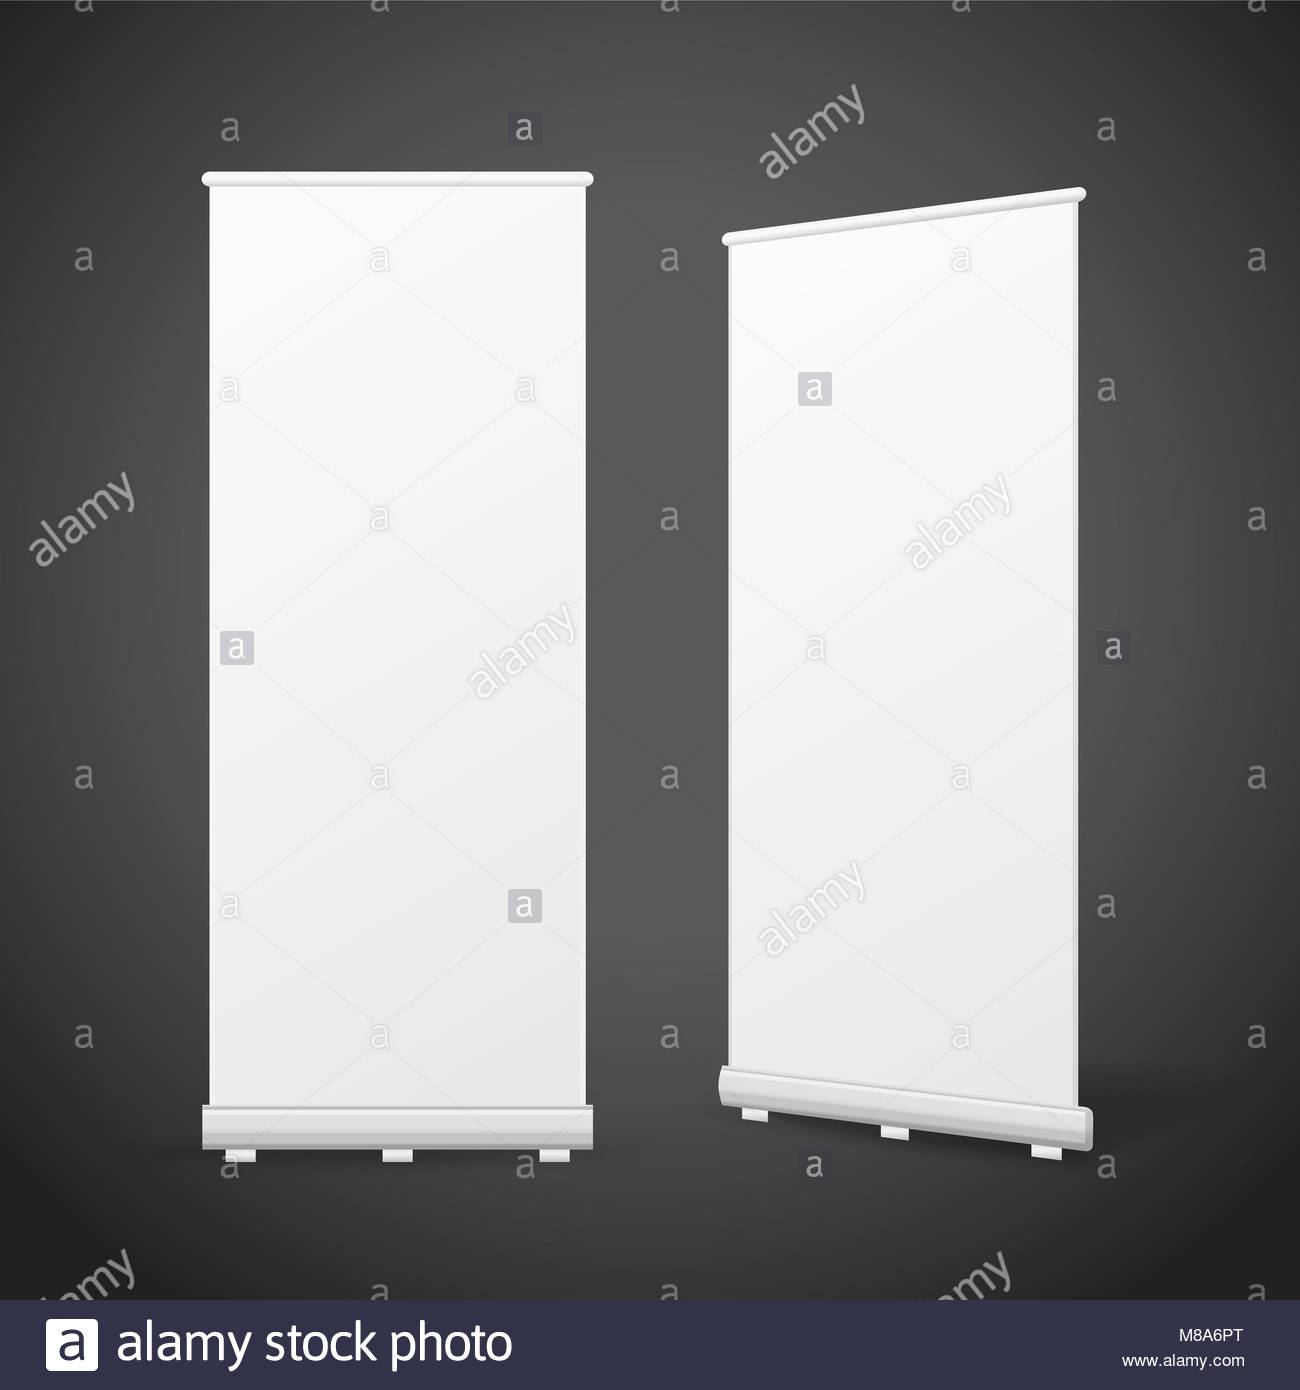 Pull Up Banner Stock Photos & Pull Up Banner Stock Images - Alamy